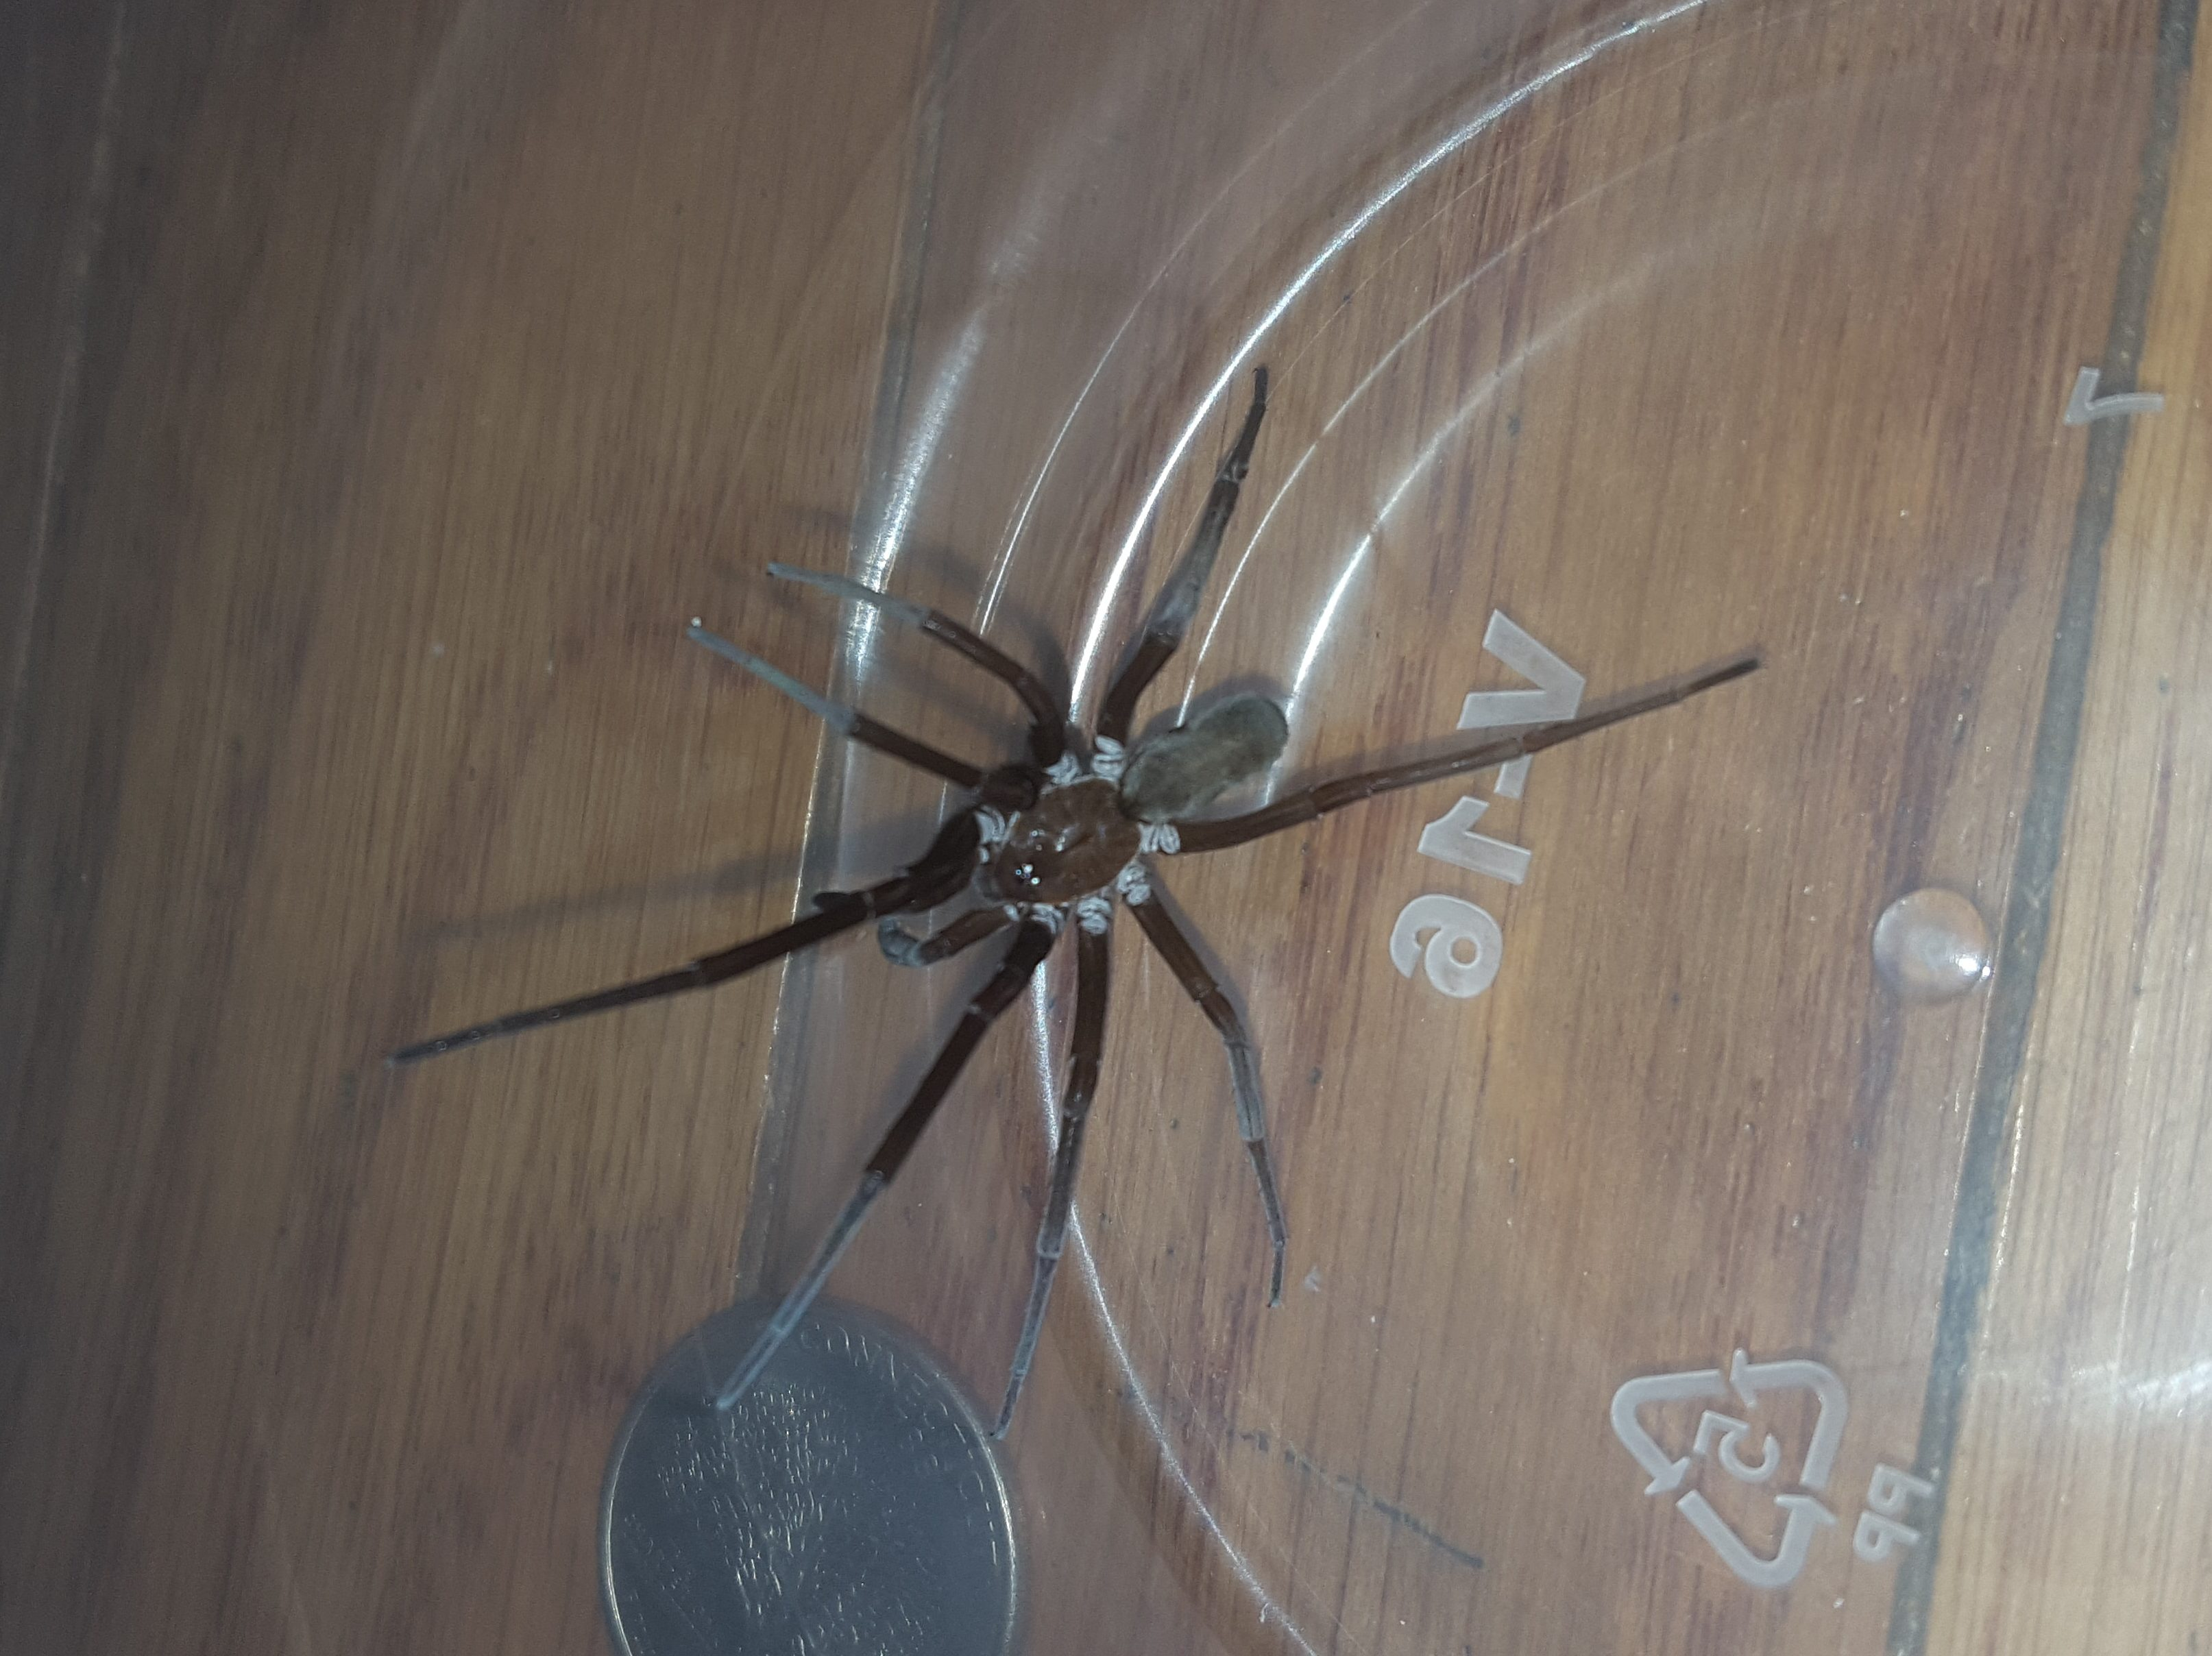 Picture of Kukulcania hibernalis (Southern House Spider) - Female - Dorsal